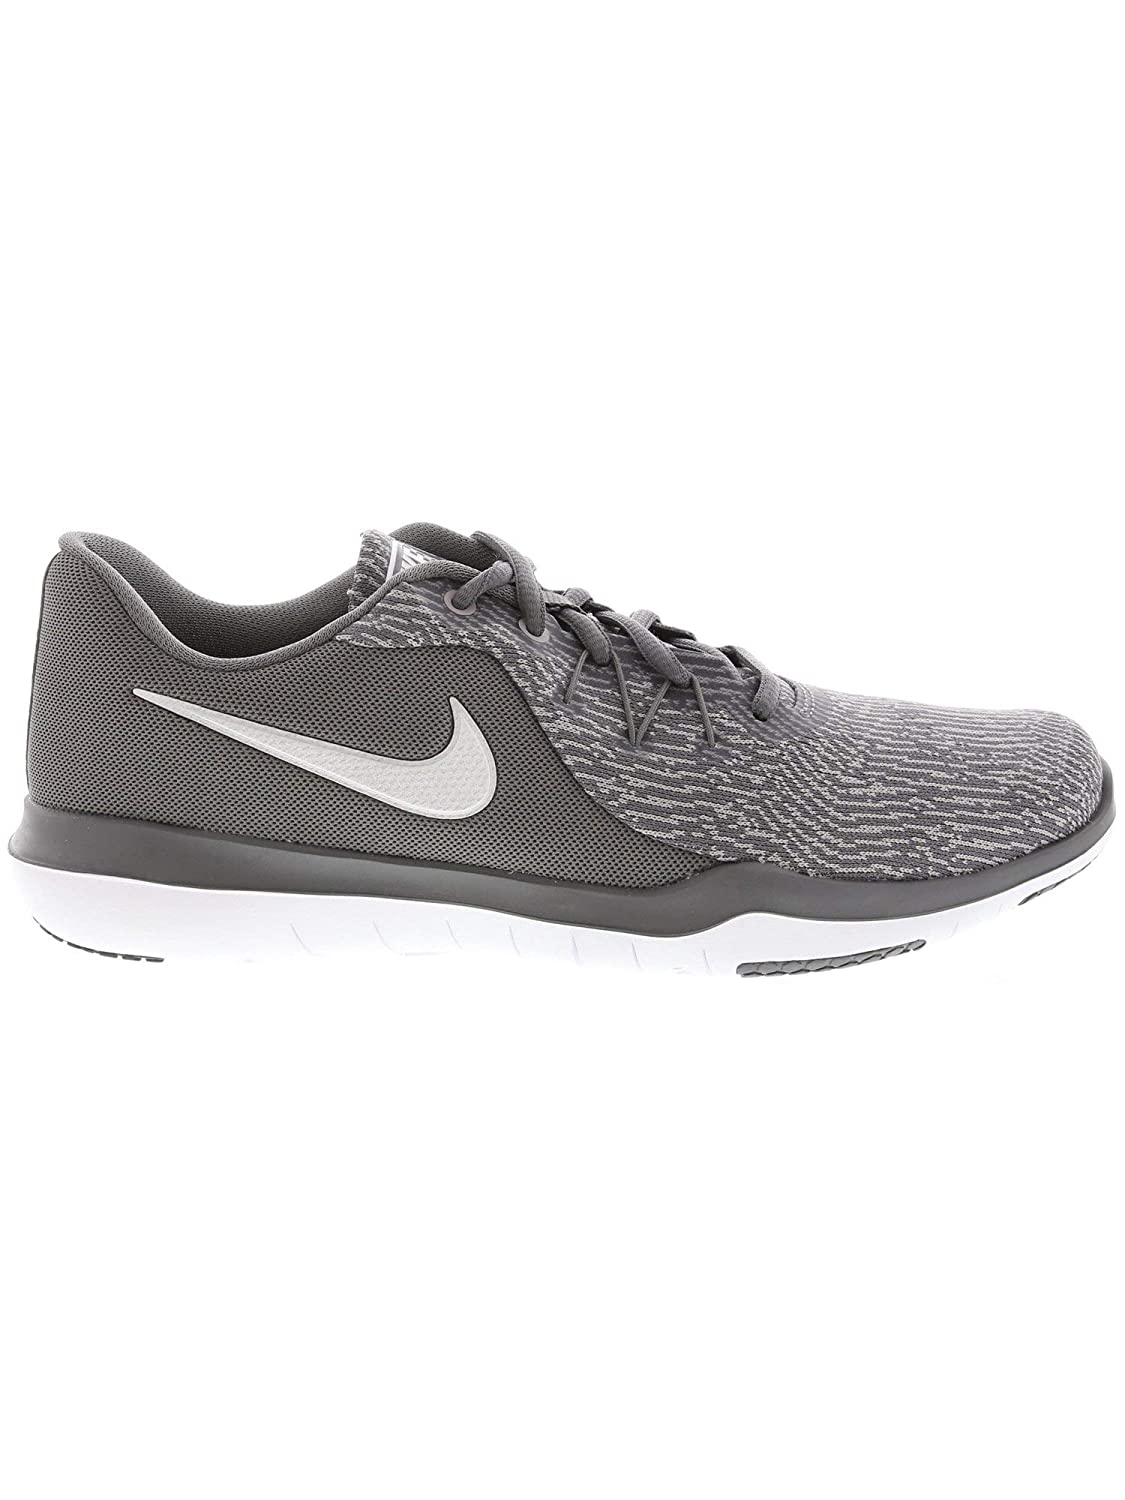 523ede32b18fa NIKE Womens Flex Supreme tr 6 Low Top Lace up Running Sneaker AH8176 019  Fitness ...